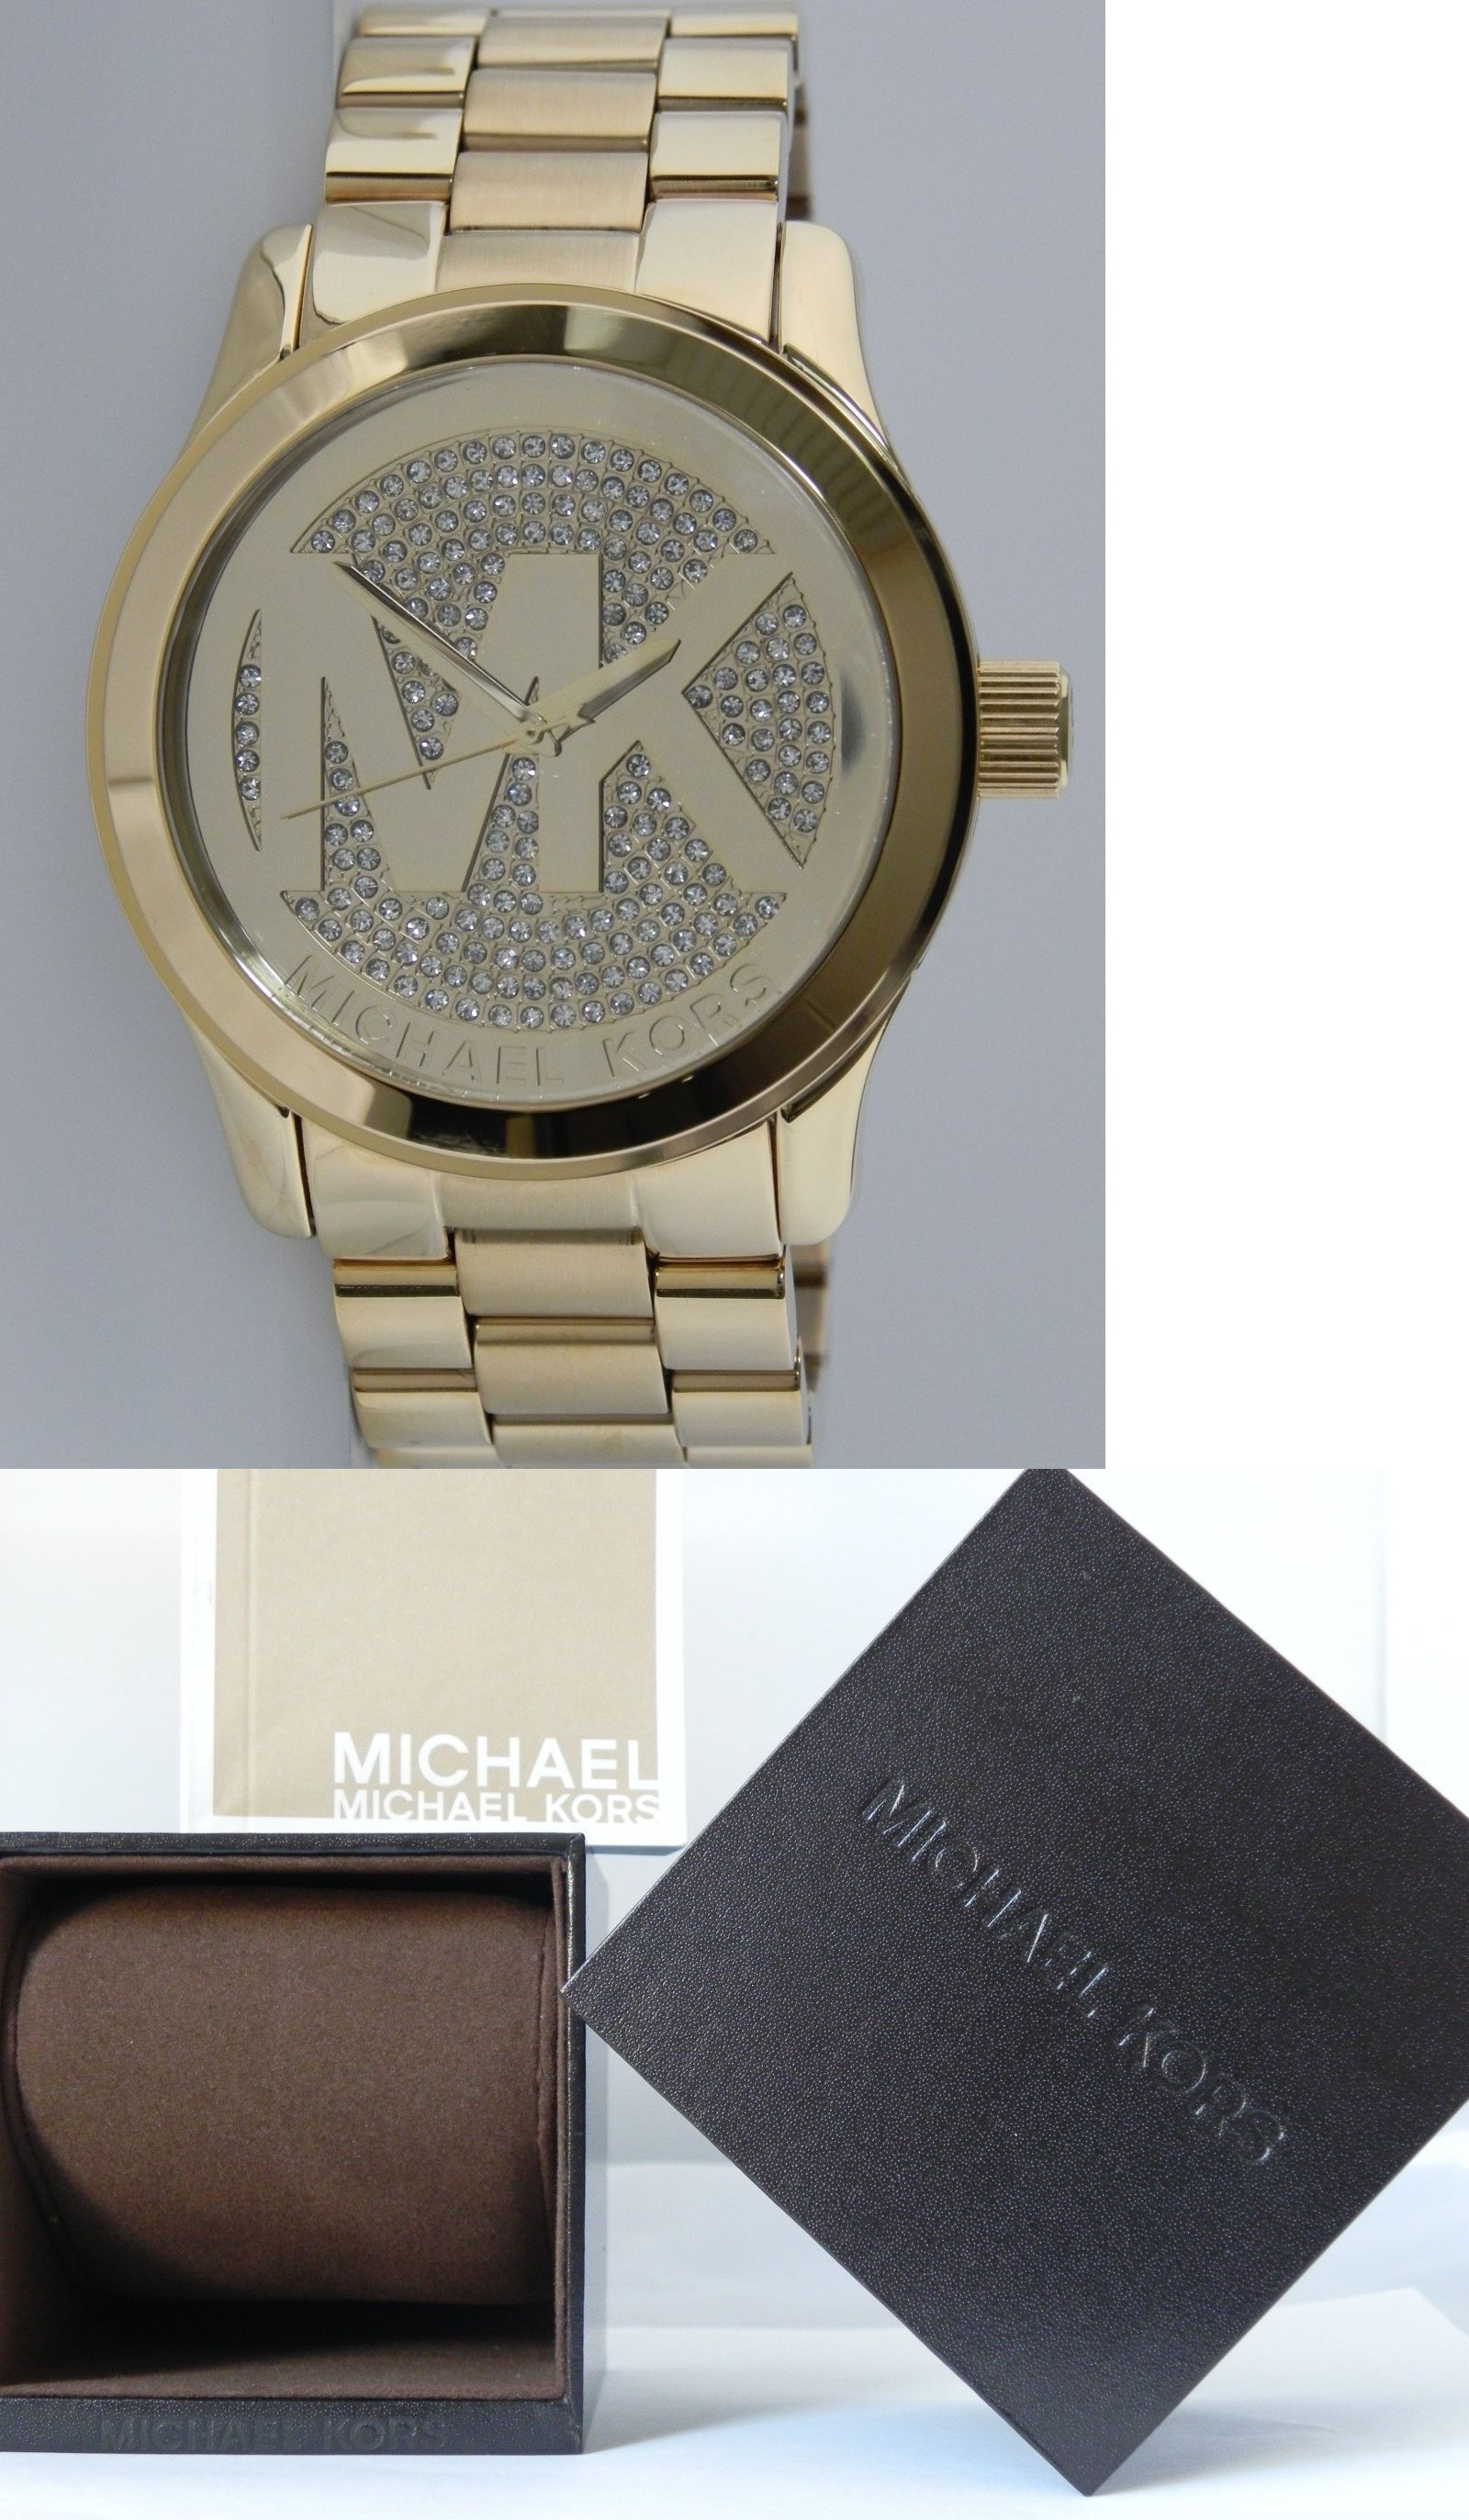 edd9ea3d1bba Parts and Accessories 51021  Michael Kors Women S Mk5706 Runway Gold Tone  With Mk Logo With Crystal Dial 45Mm -  BUY IT NOW ONLY   295 on eBay!